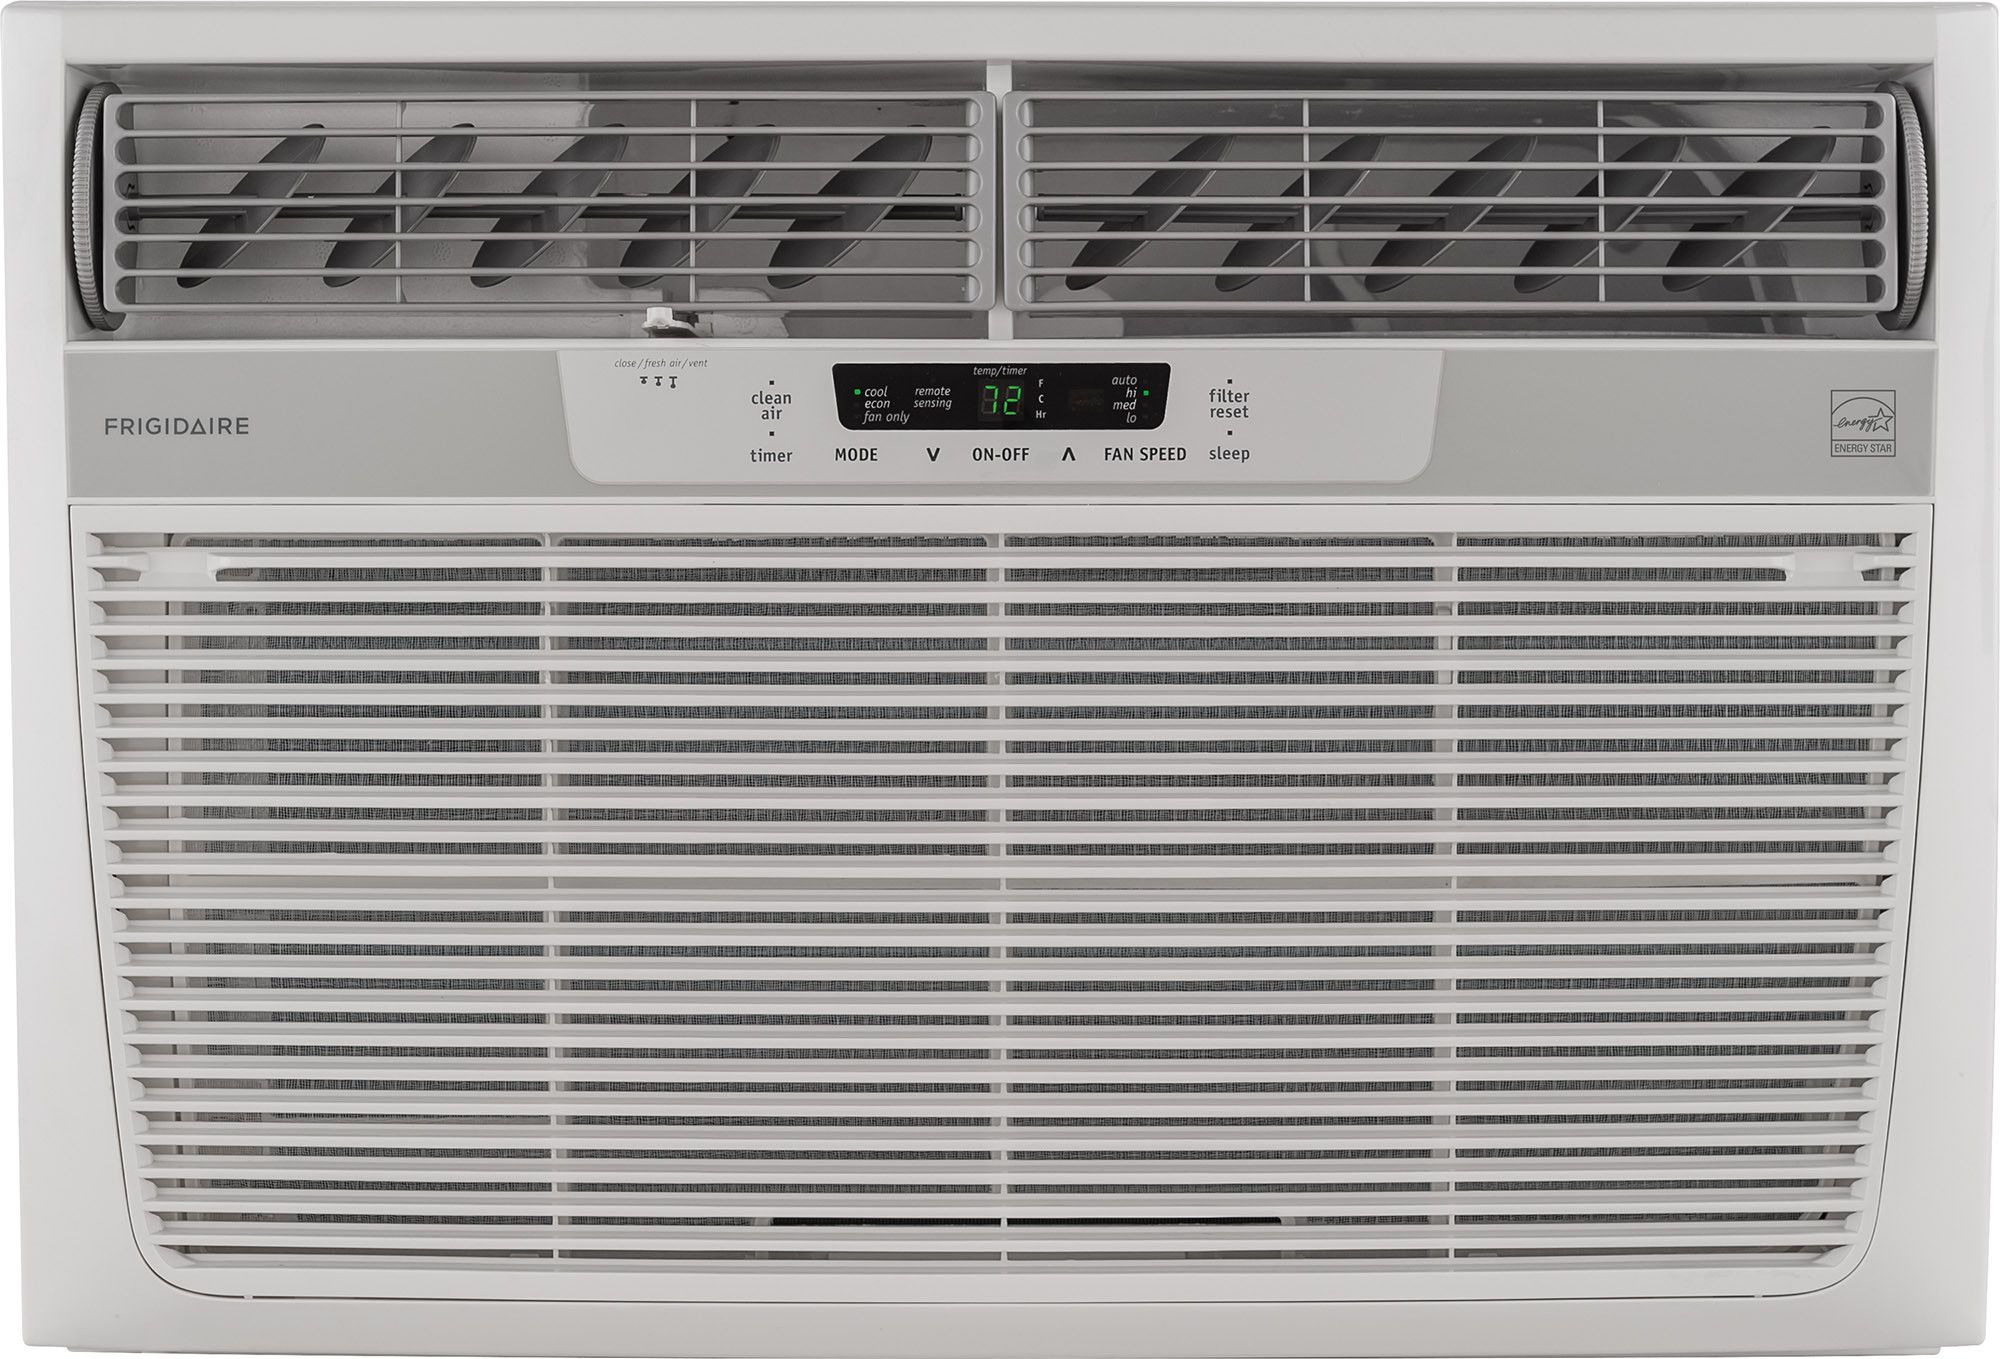 Frigidaire Ffre2233s2 22 000 Btu Energy Star Window Wall Air Conditioner With Digital Co Window Air Conditioner Room Air Conditioner Frigidaire Air Conditioner